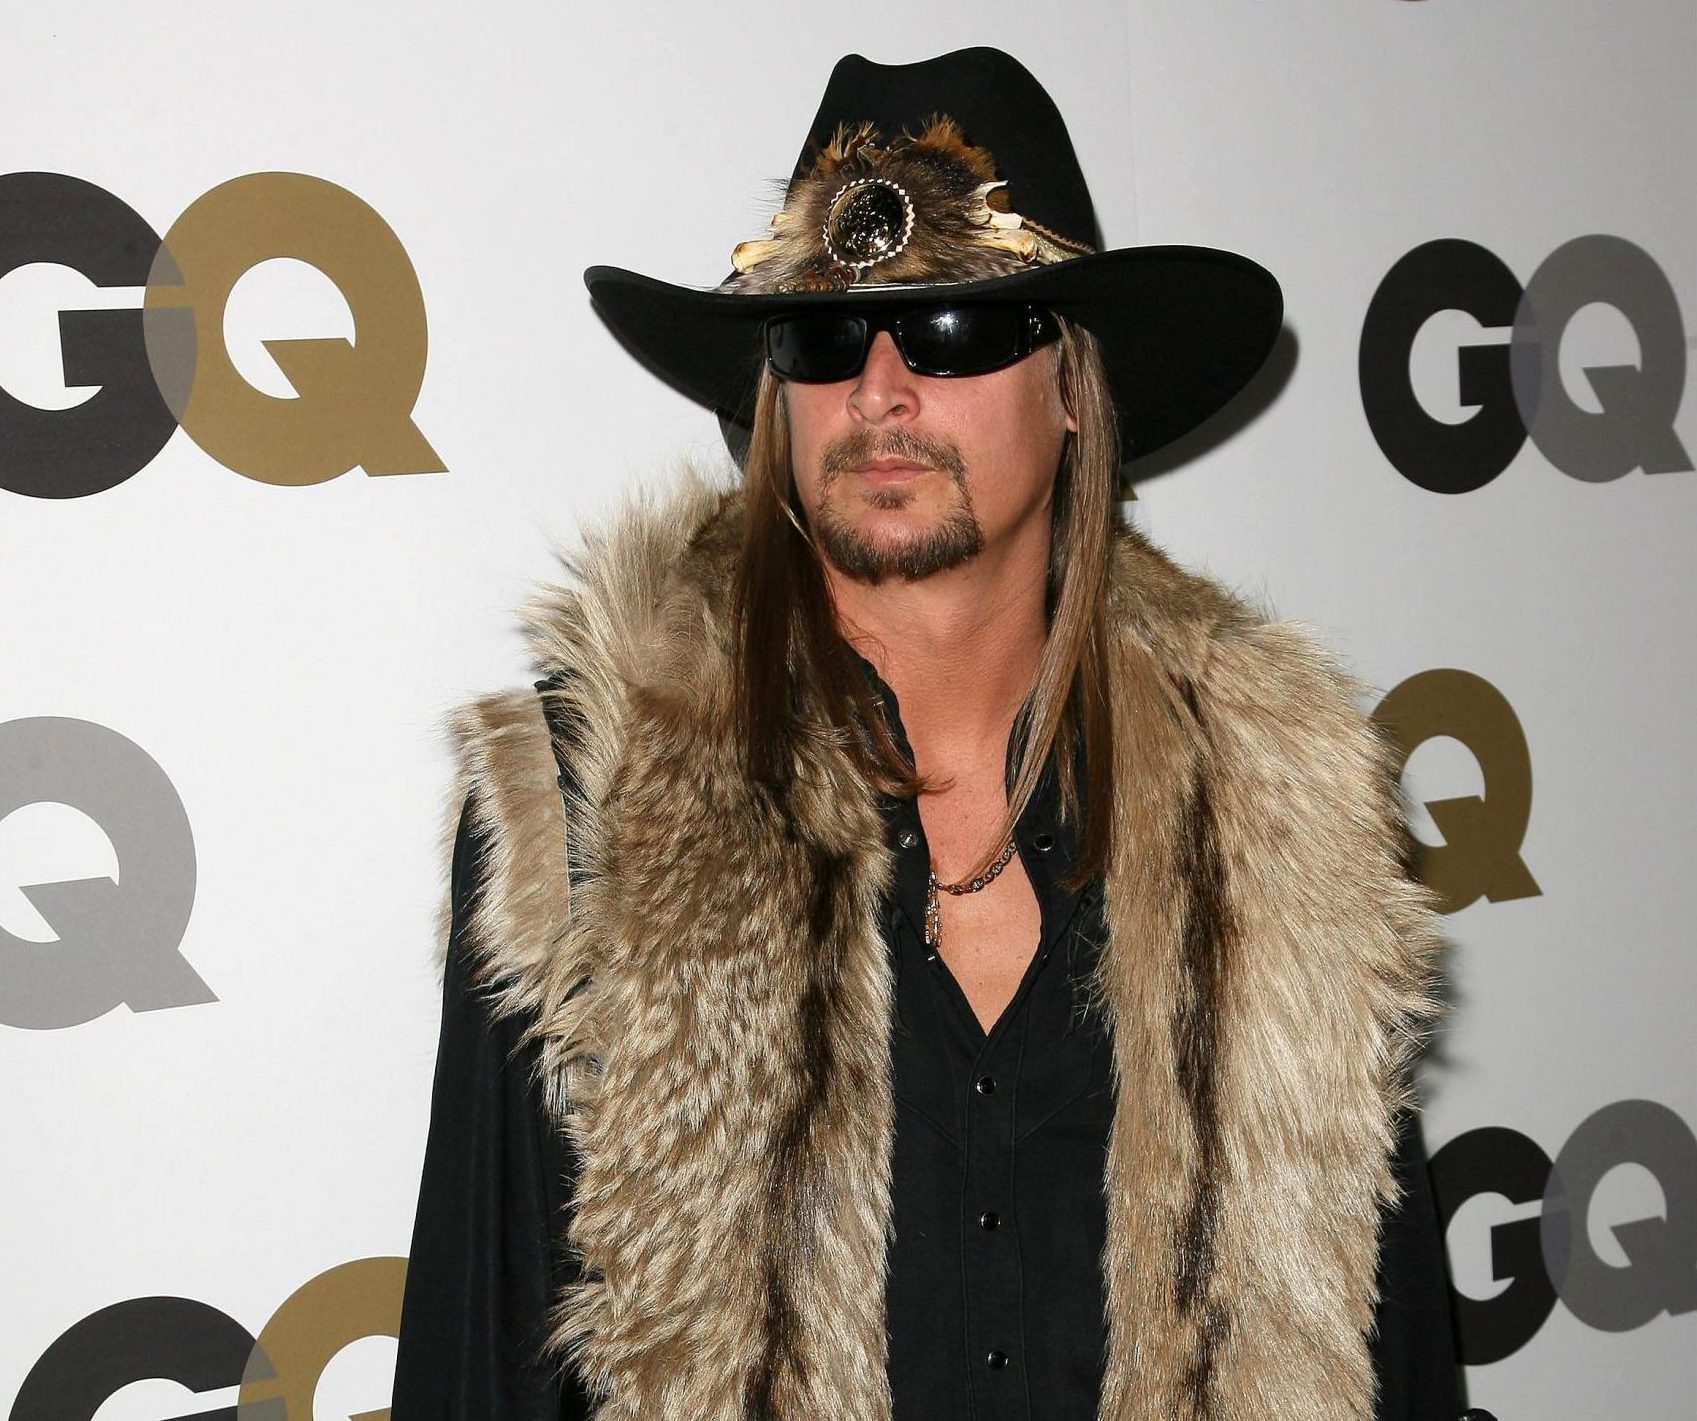 Kid Rock poses at a red carpet event. He wears a black cowboy hat, sunglasses, a fur vest and a black shirt underneath. He has long, straight hair that sits past his shoulders and a fine moustache and short beard. He looks very stylish!